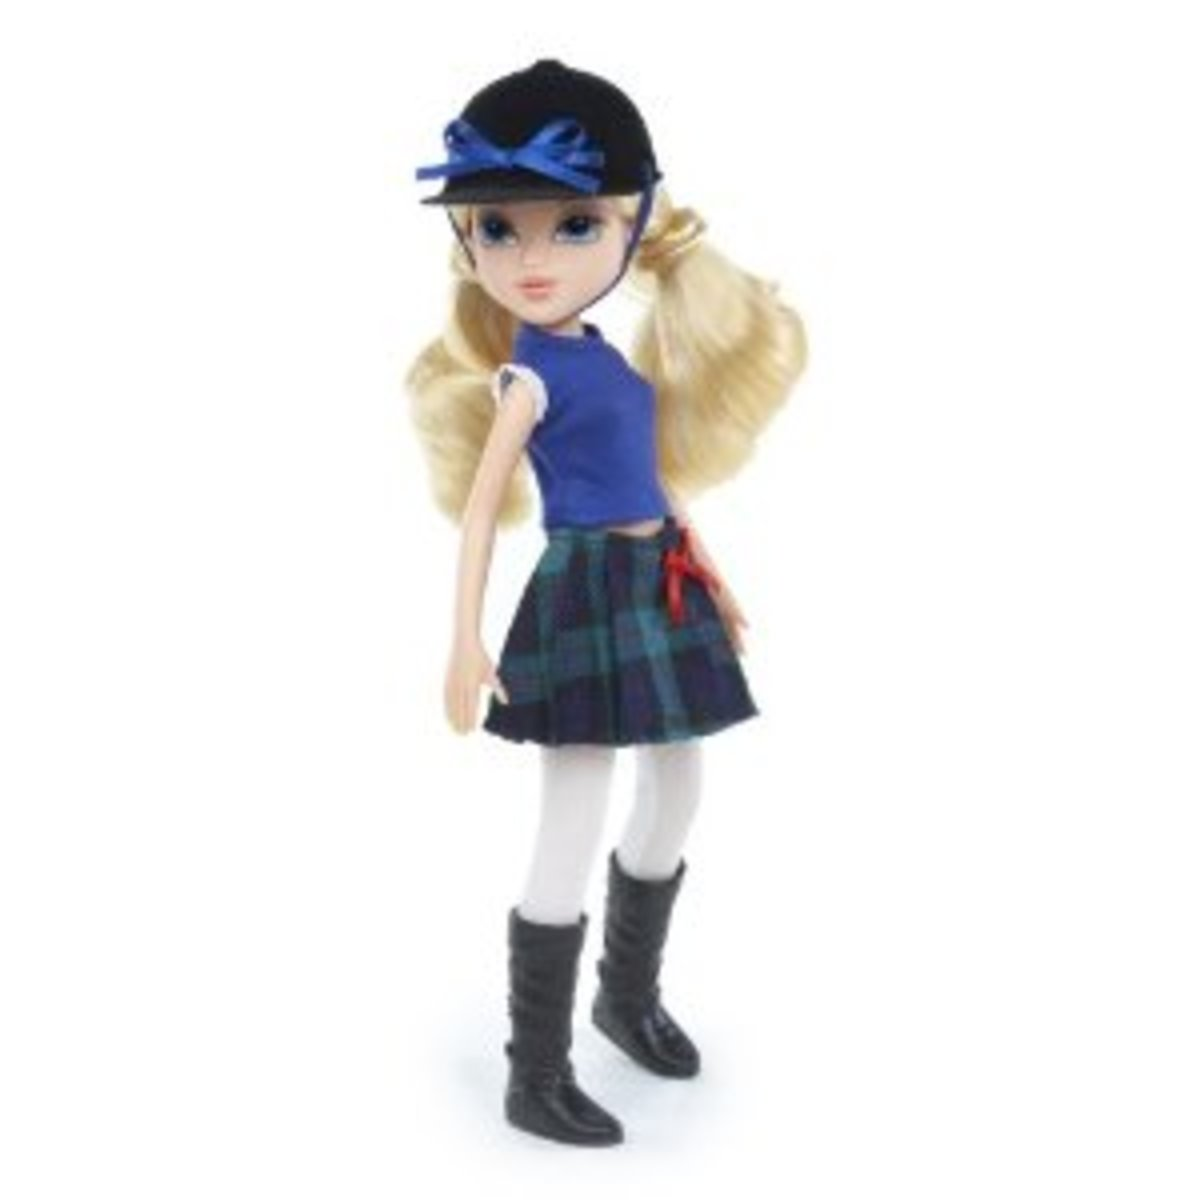 Moxie Girlz Horse Riding Club Doll Avery Complete with Riding Hat and Paddock Boots